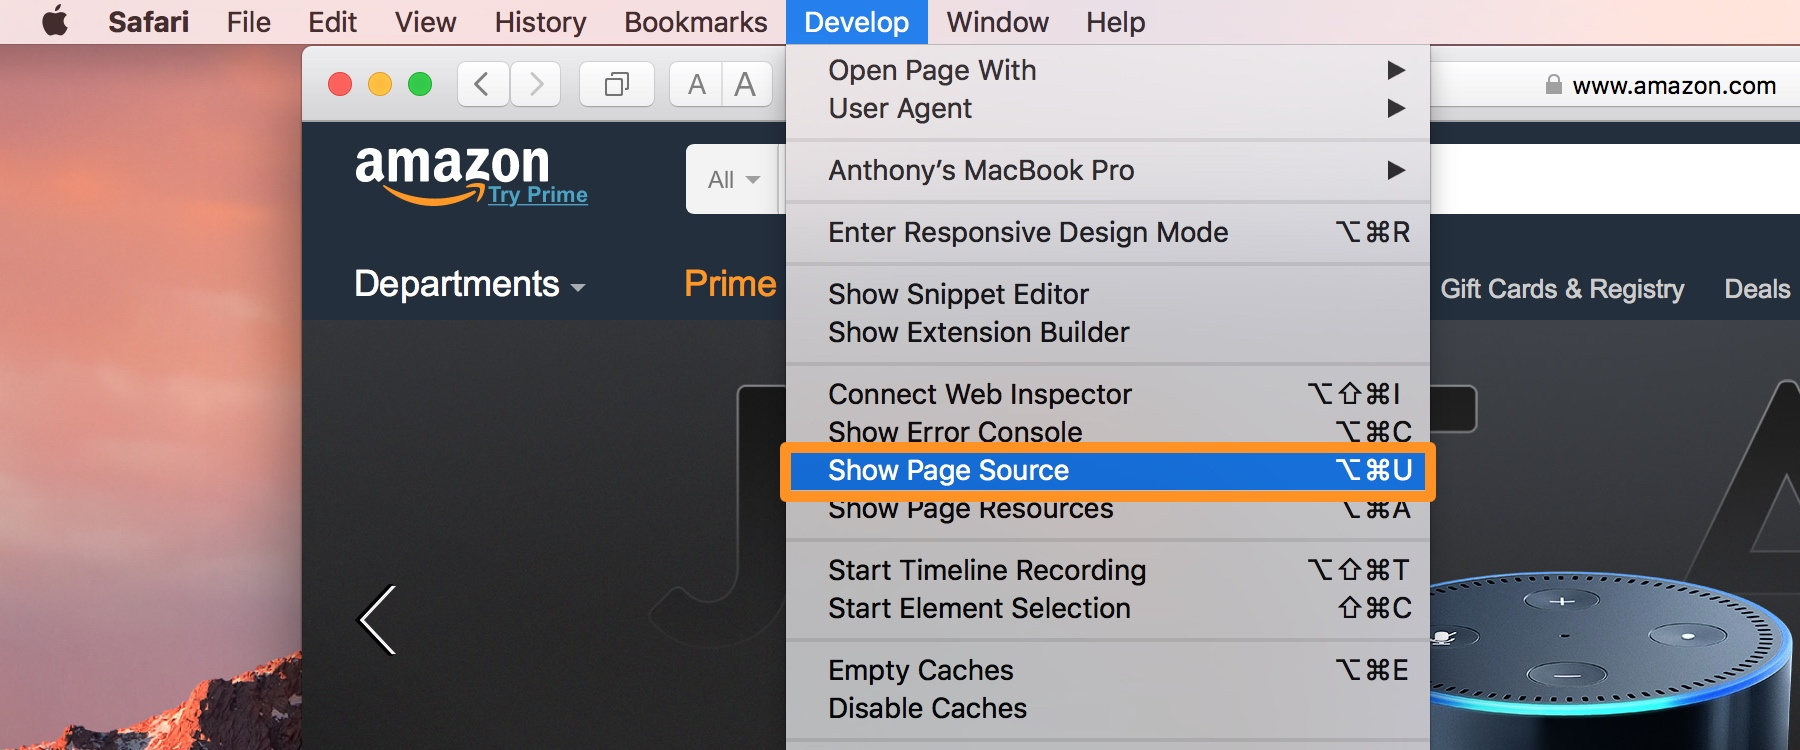 Show page source in Safari for Mac